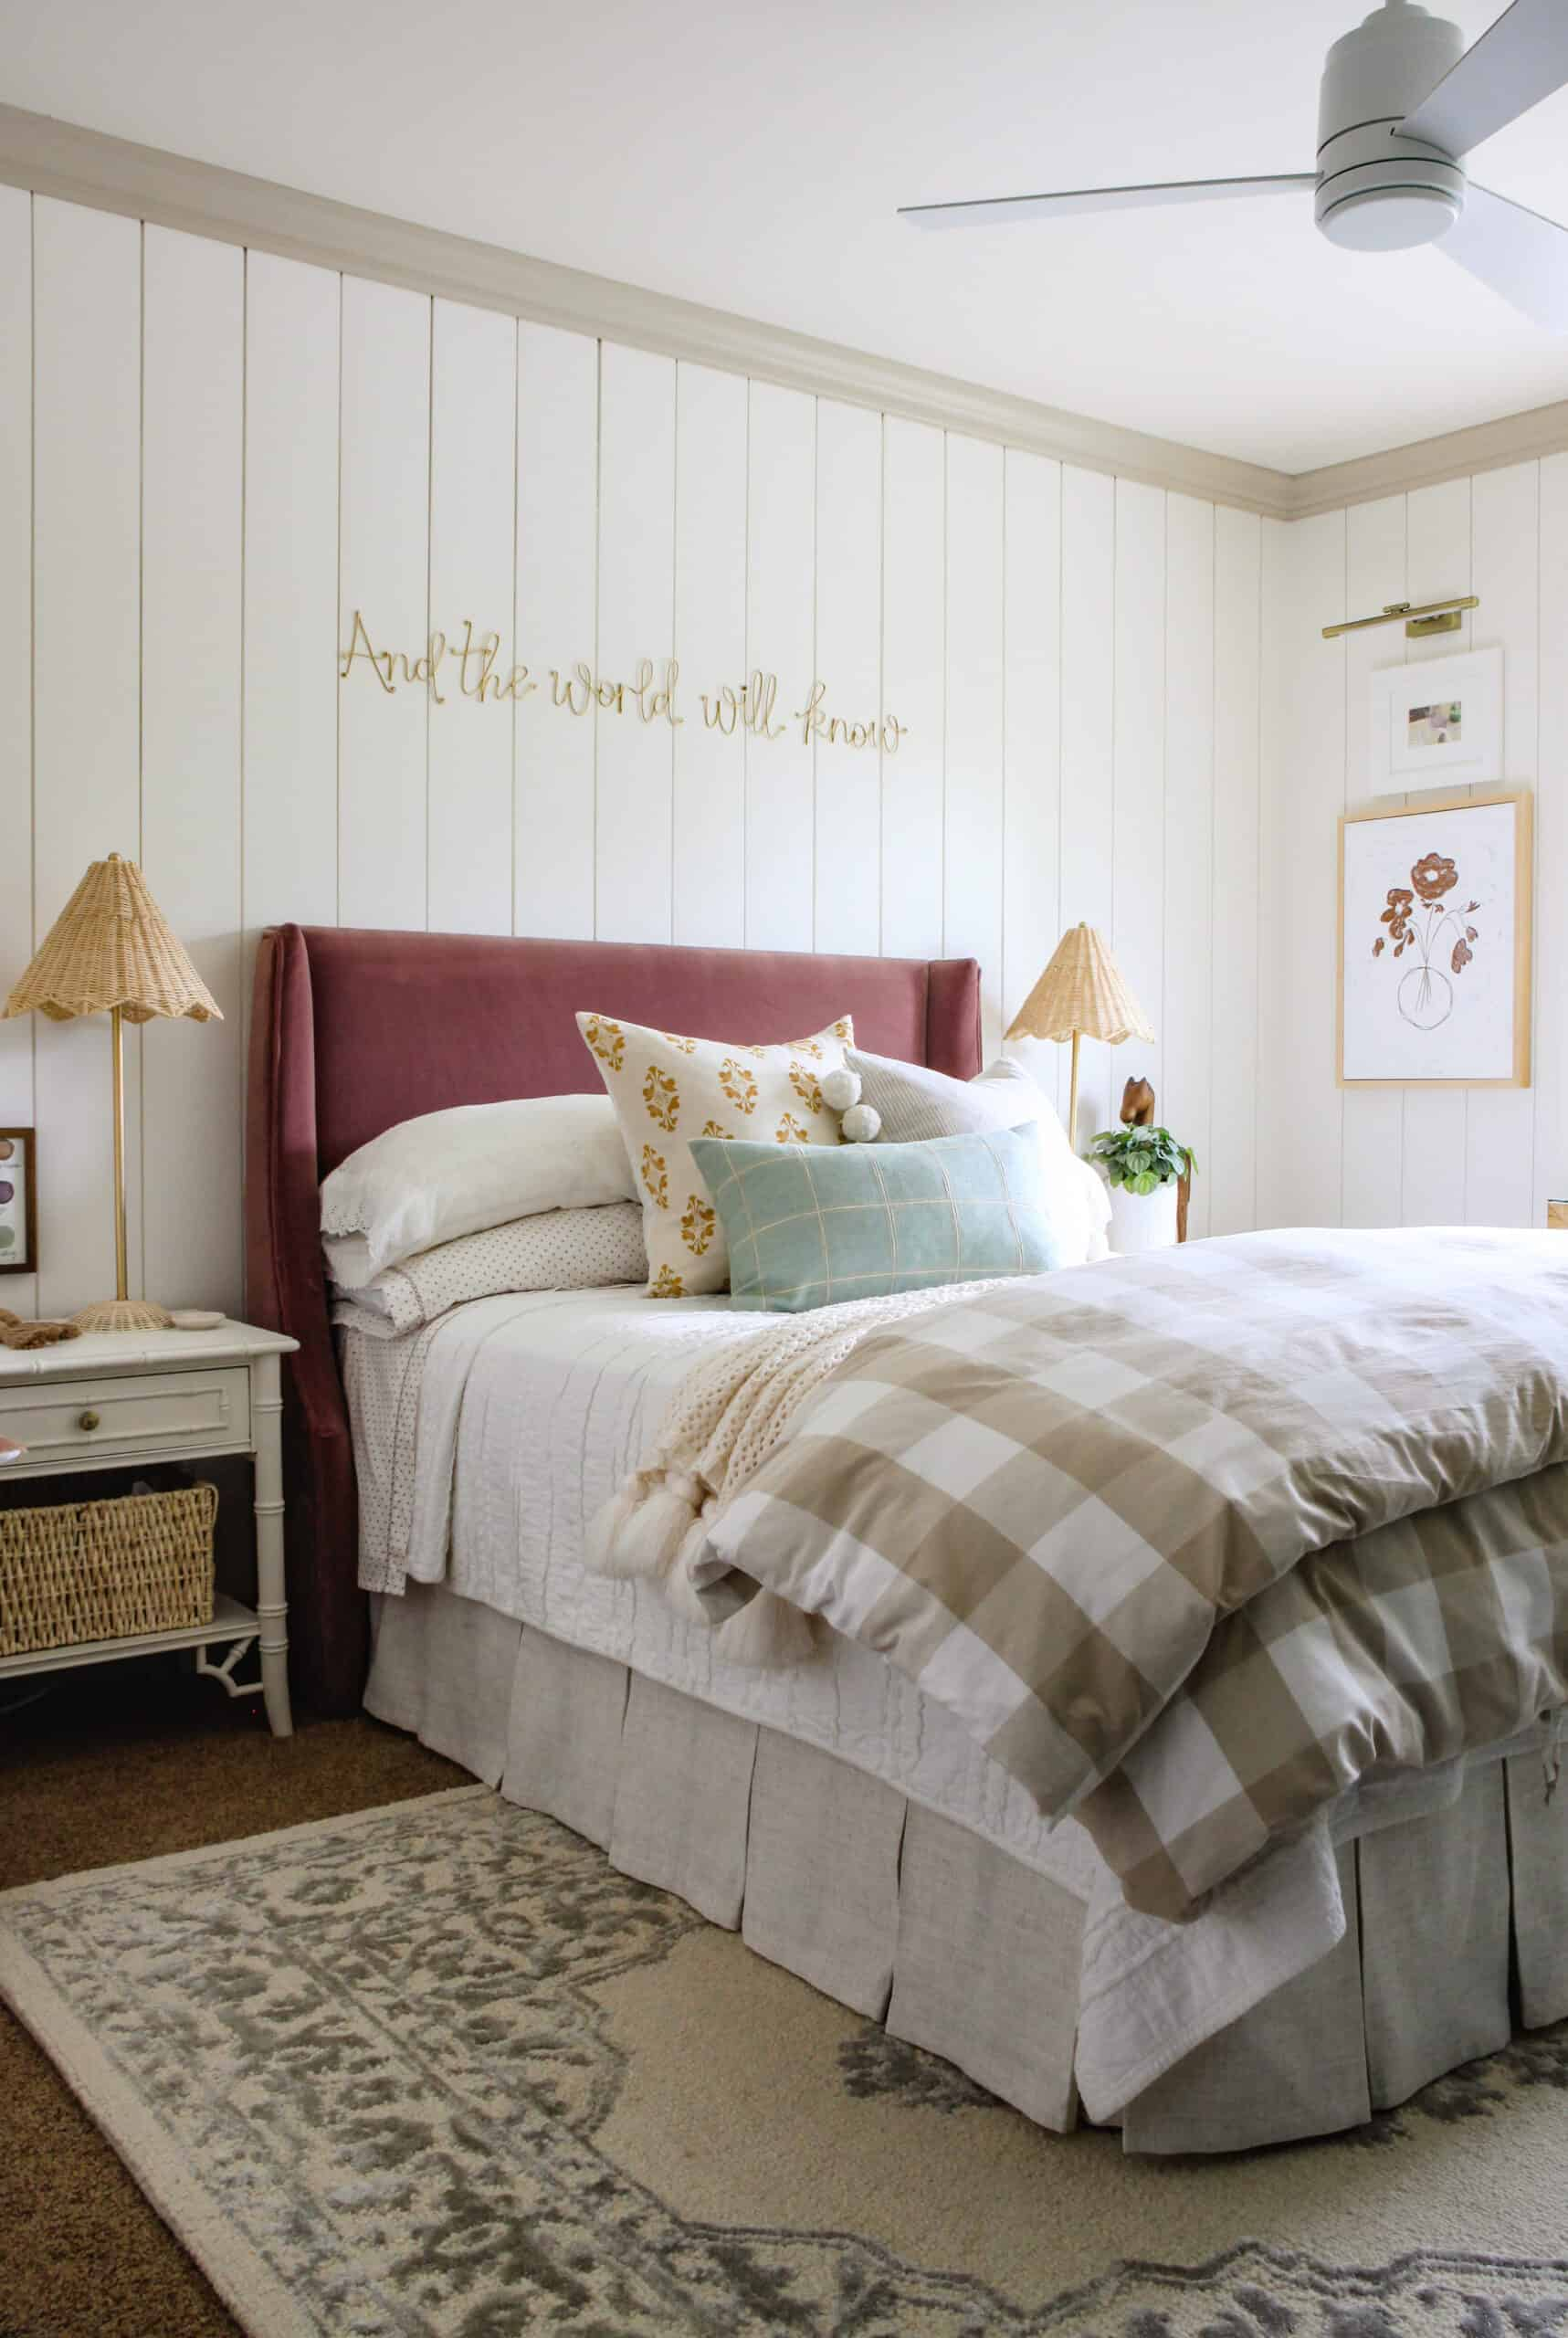 girls bedroom with white vertical shiplap, velvet headboard, and plaid duvet cover